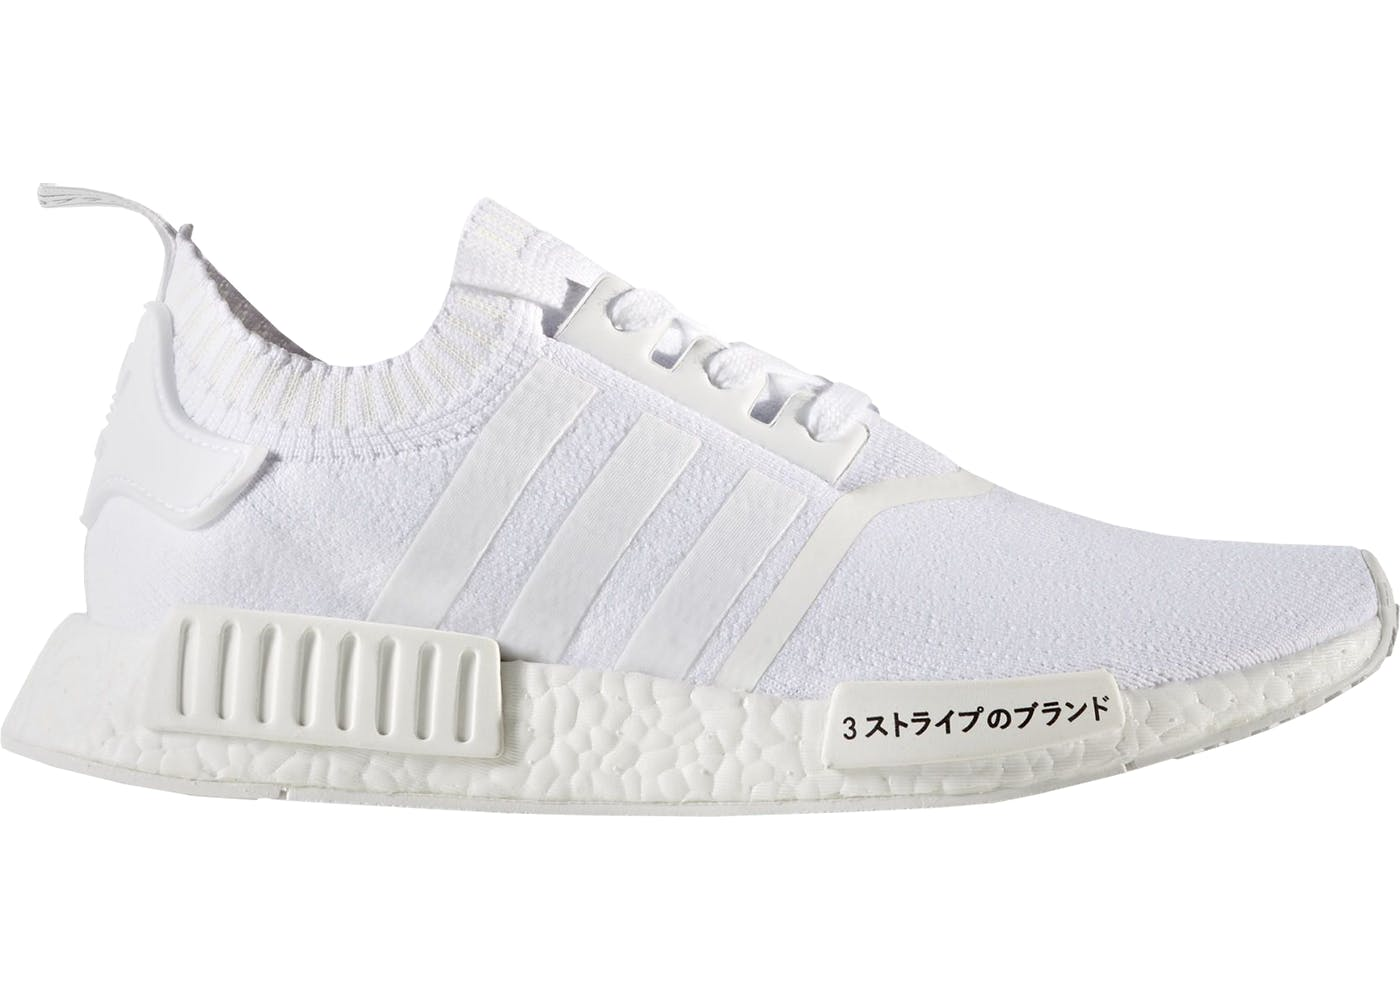 adidas nmd r1 japan triple white. Black Bedroom Furniture Sets. Home Design Ideas